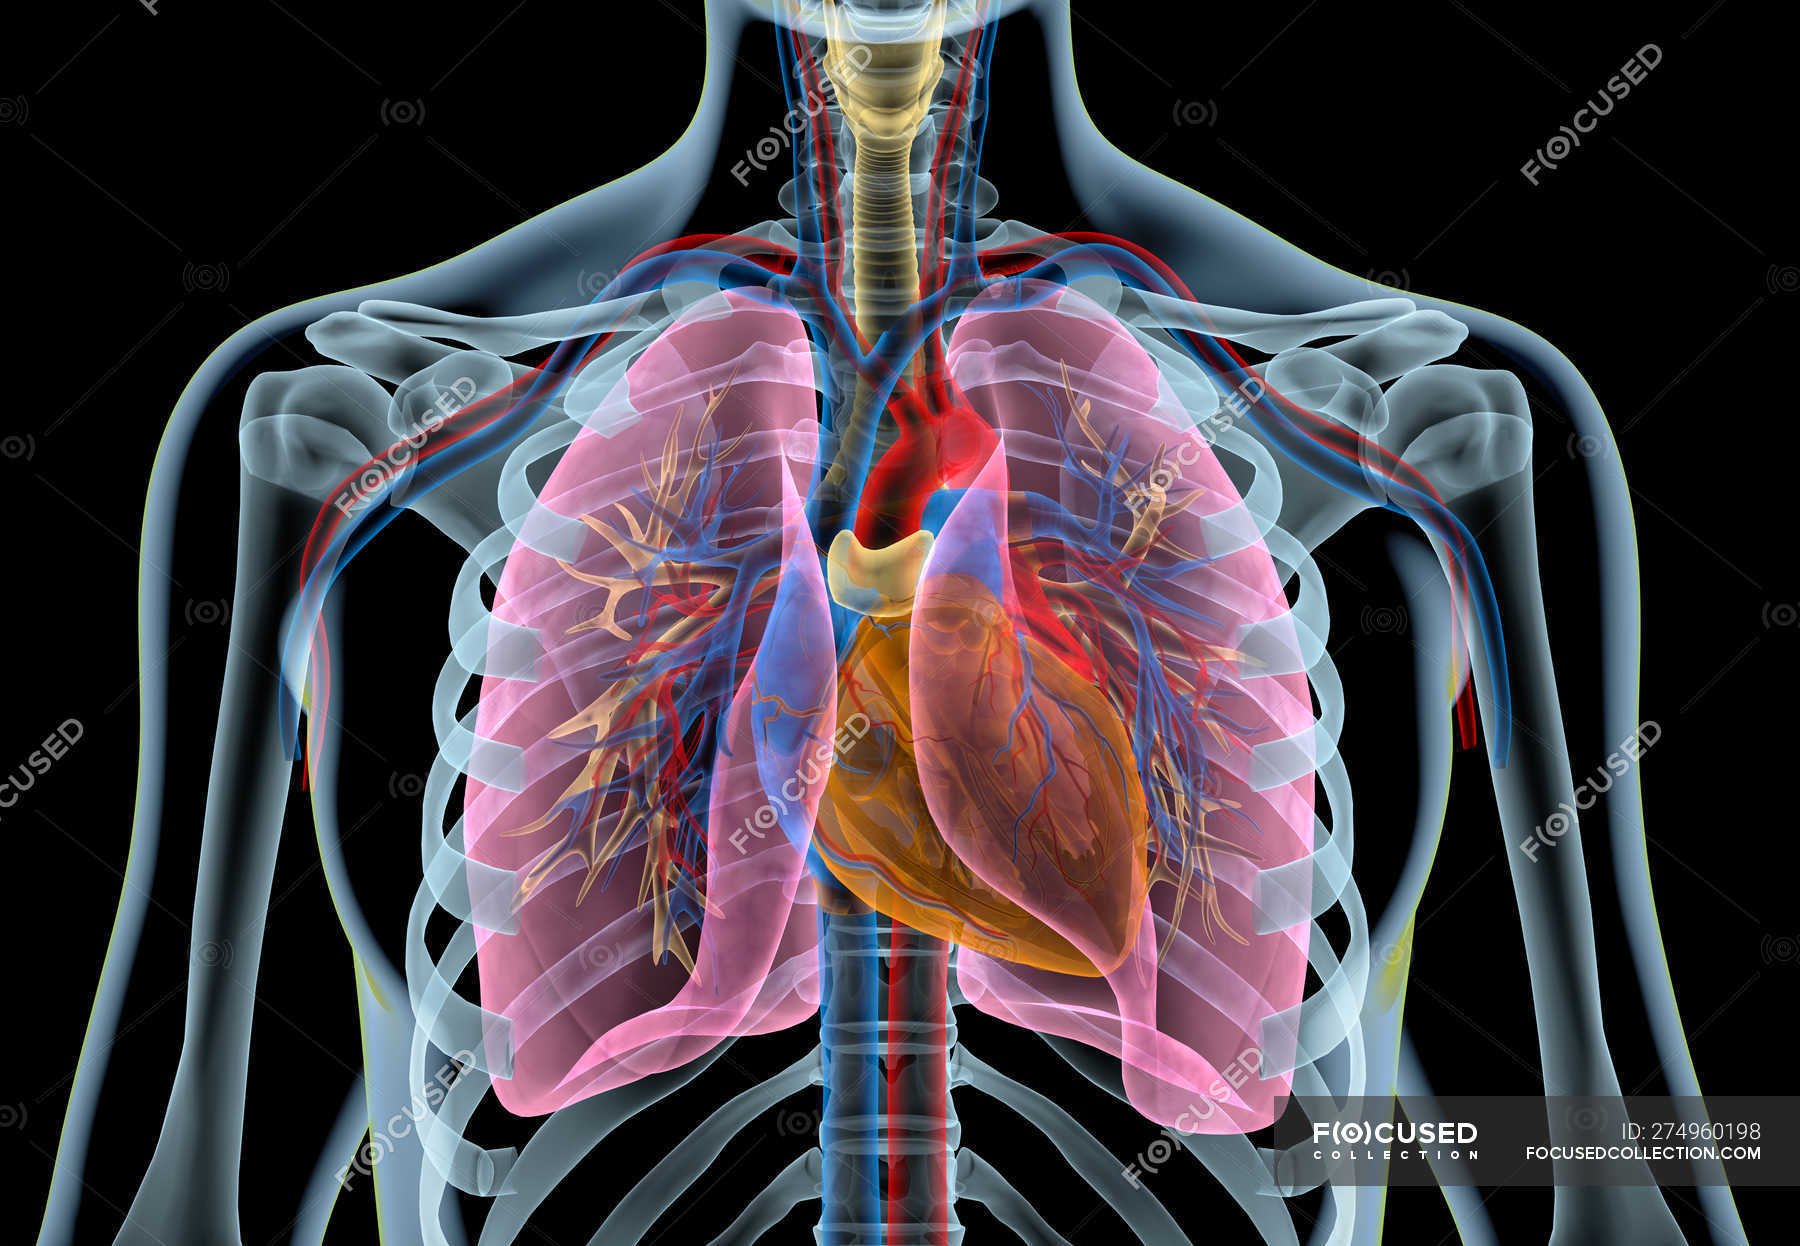 Human Heart With Vessels Lungs Bronchial Tree And Cut Rib Cage In X Ray Effect On Black Background Cardio Human Anatomy Stock Photo 274960198